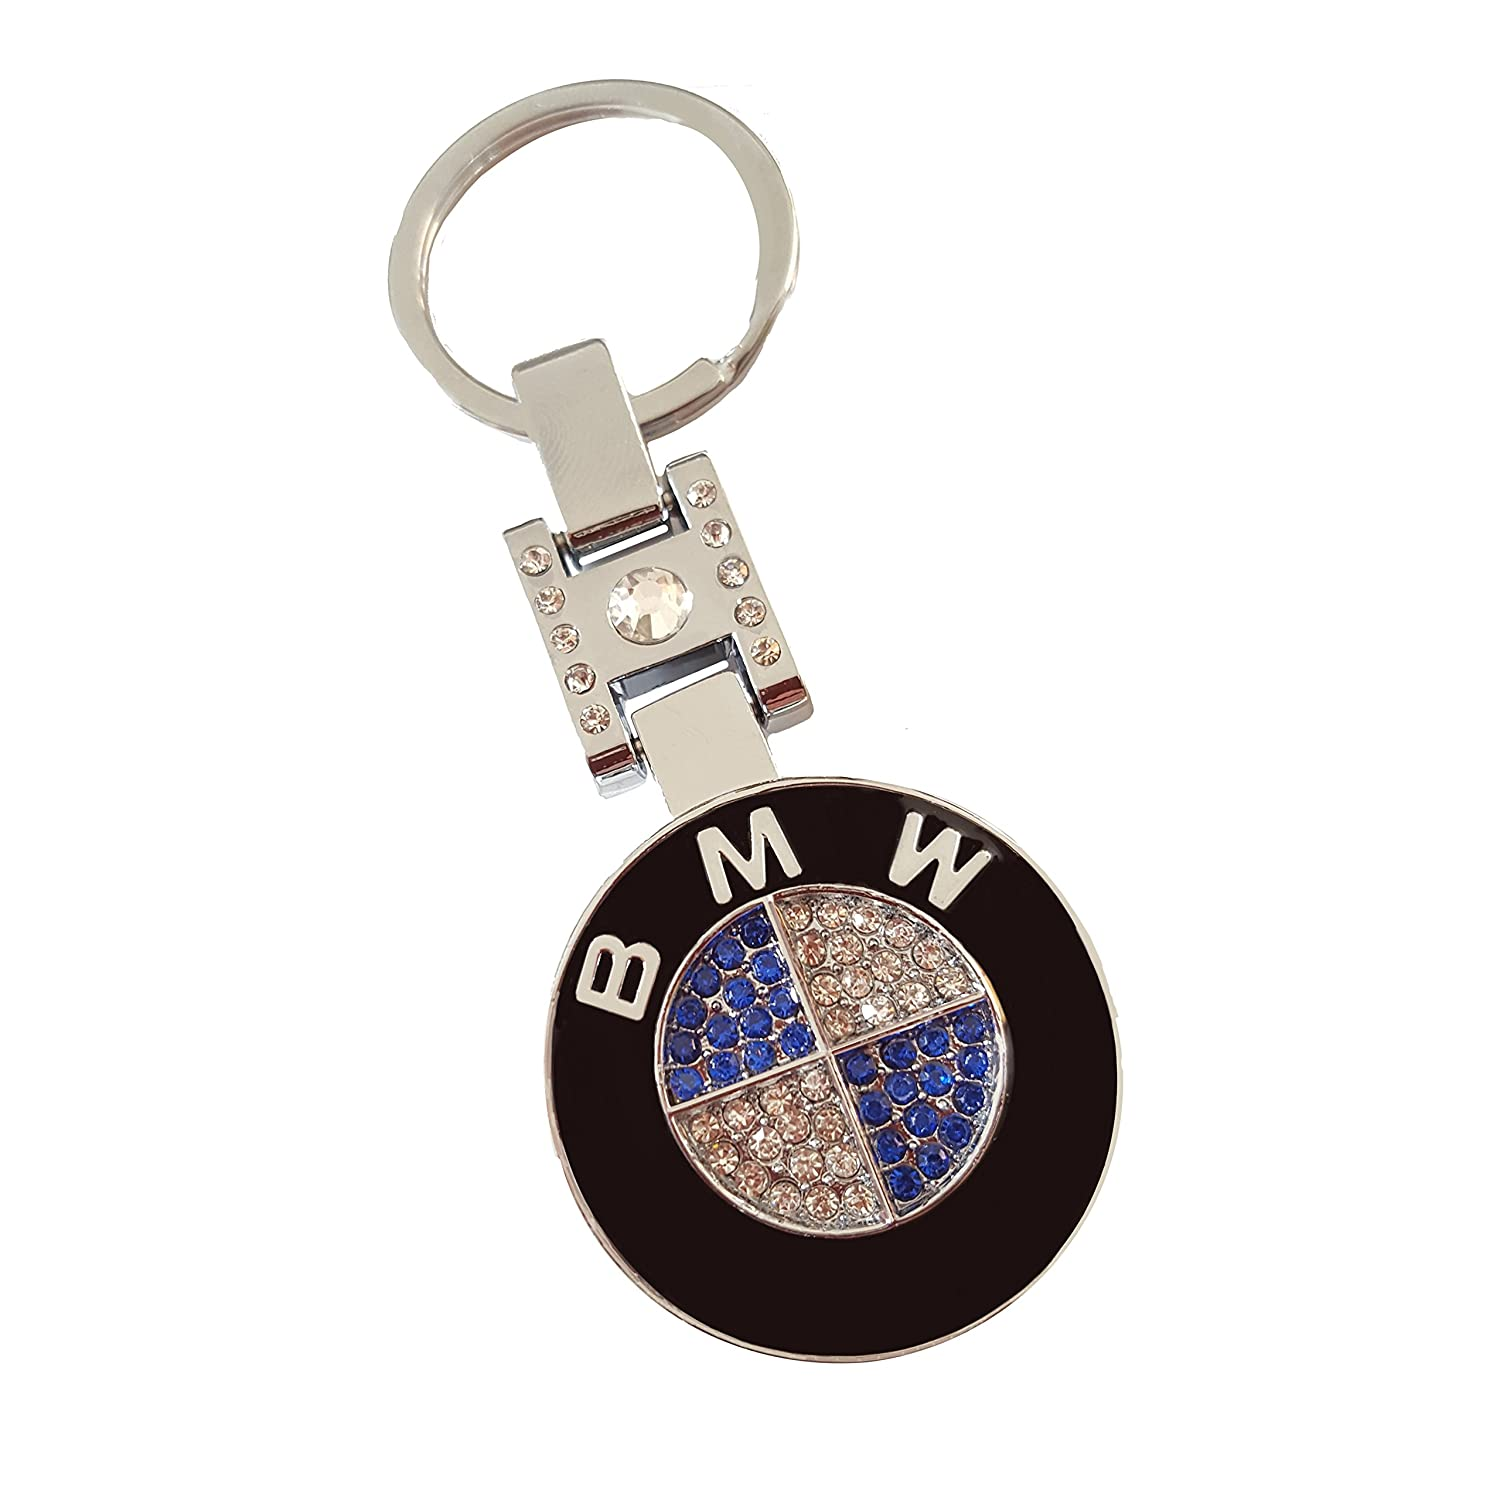 A Swarovski Crystals Key Holder with a BMW Logo